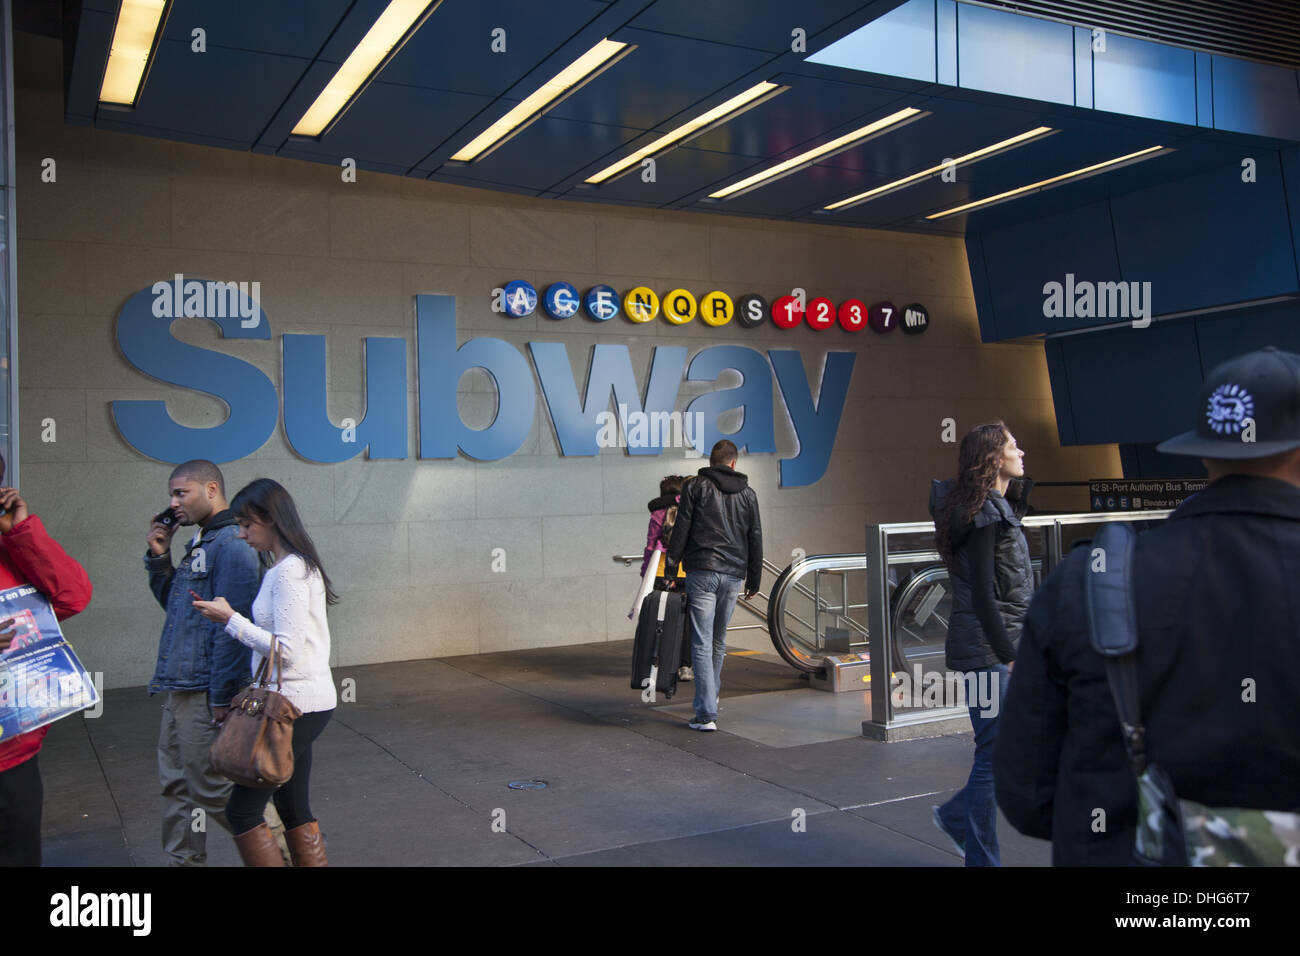 Large subway station entrance along 42nd Street in NYC - Stock Image